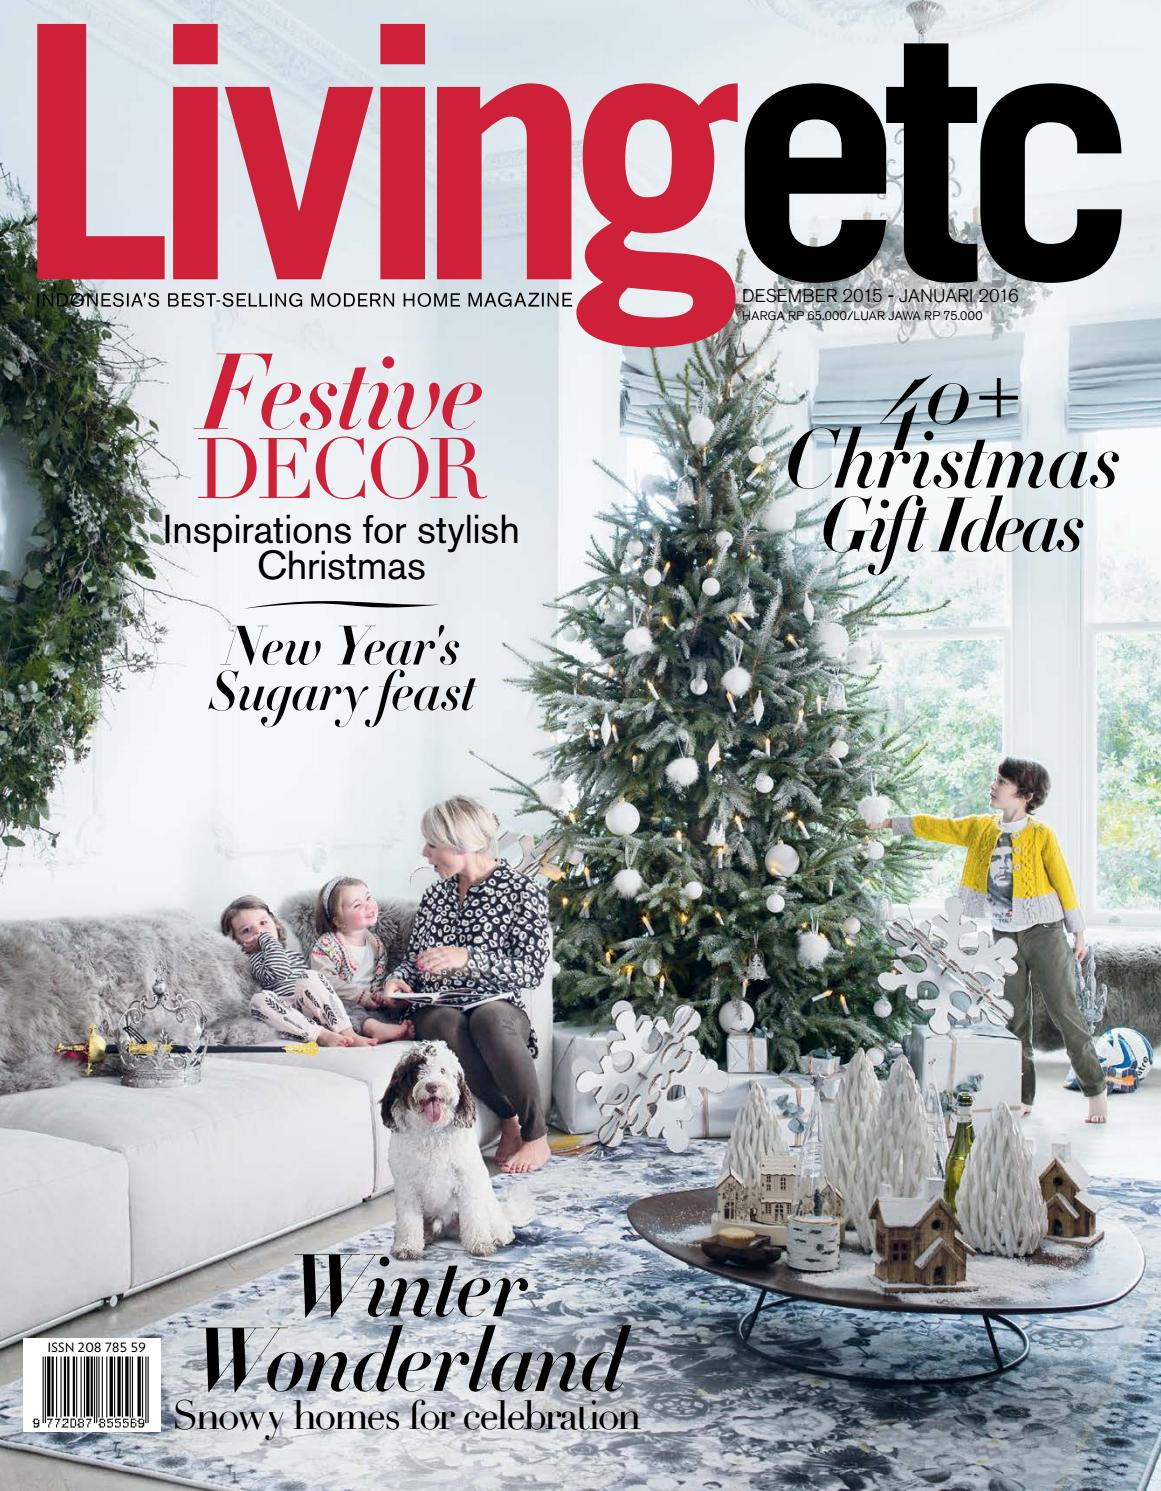 Livingetc Indonesia Desember 2015 Januari 2016 By Sunthy Sunowo Issuu